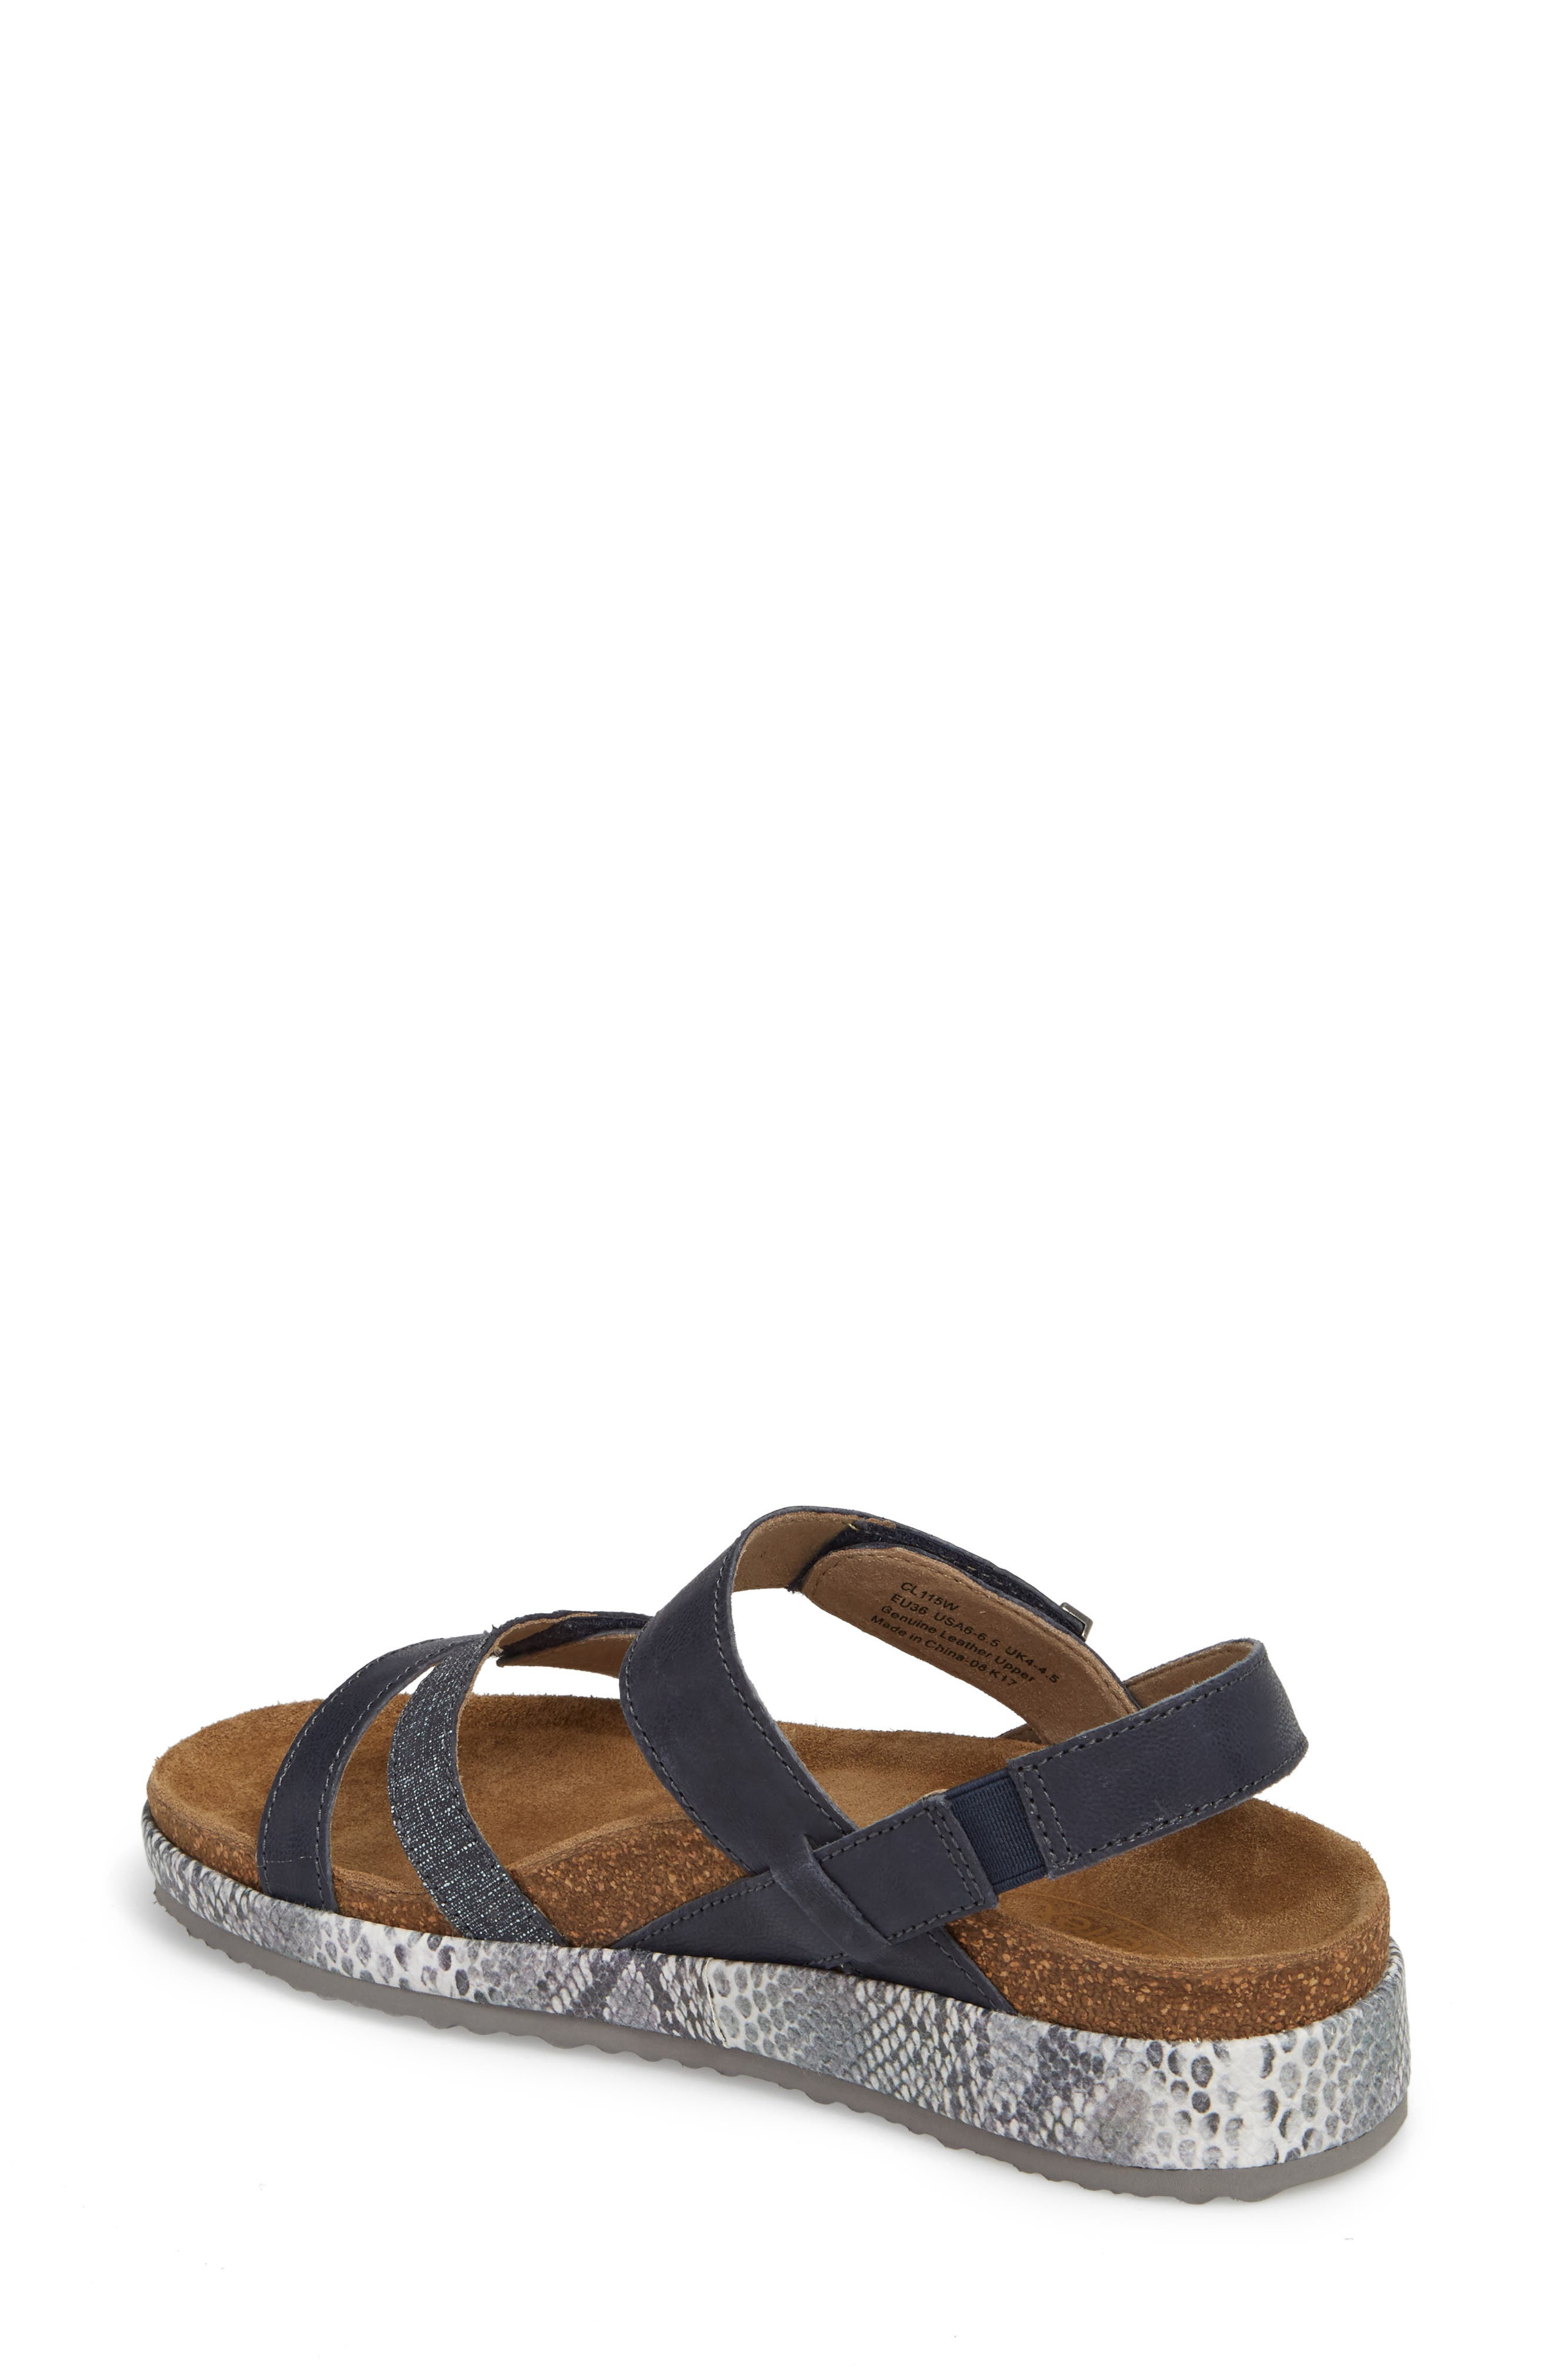 Bethany Sandal,                             Alternate thumbnail 2, color,                             Navy Multi Leather